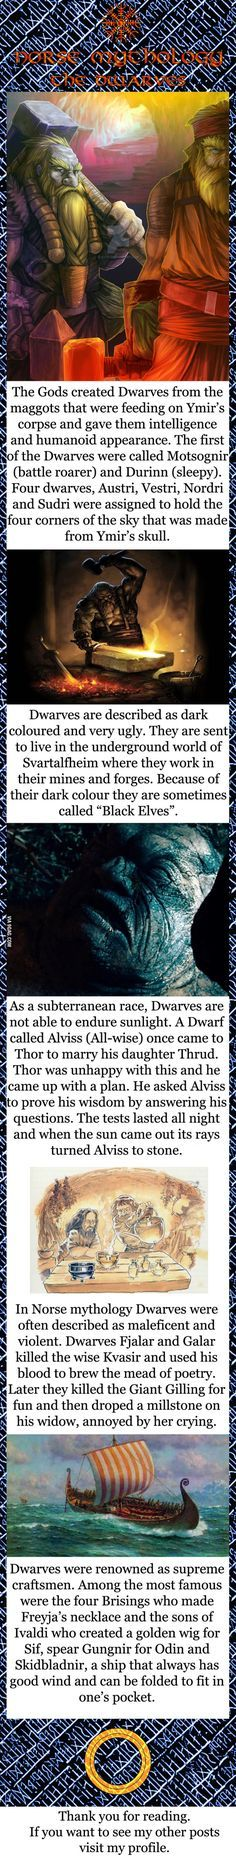 Norse mythology - The Dwarves